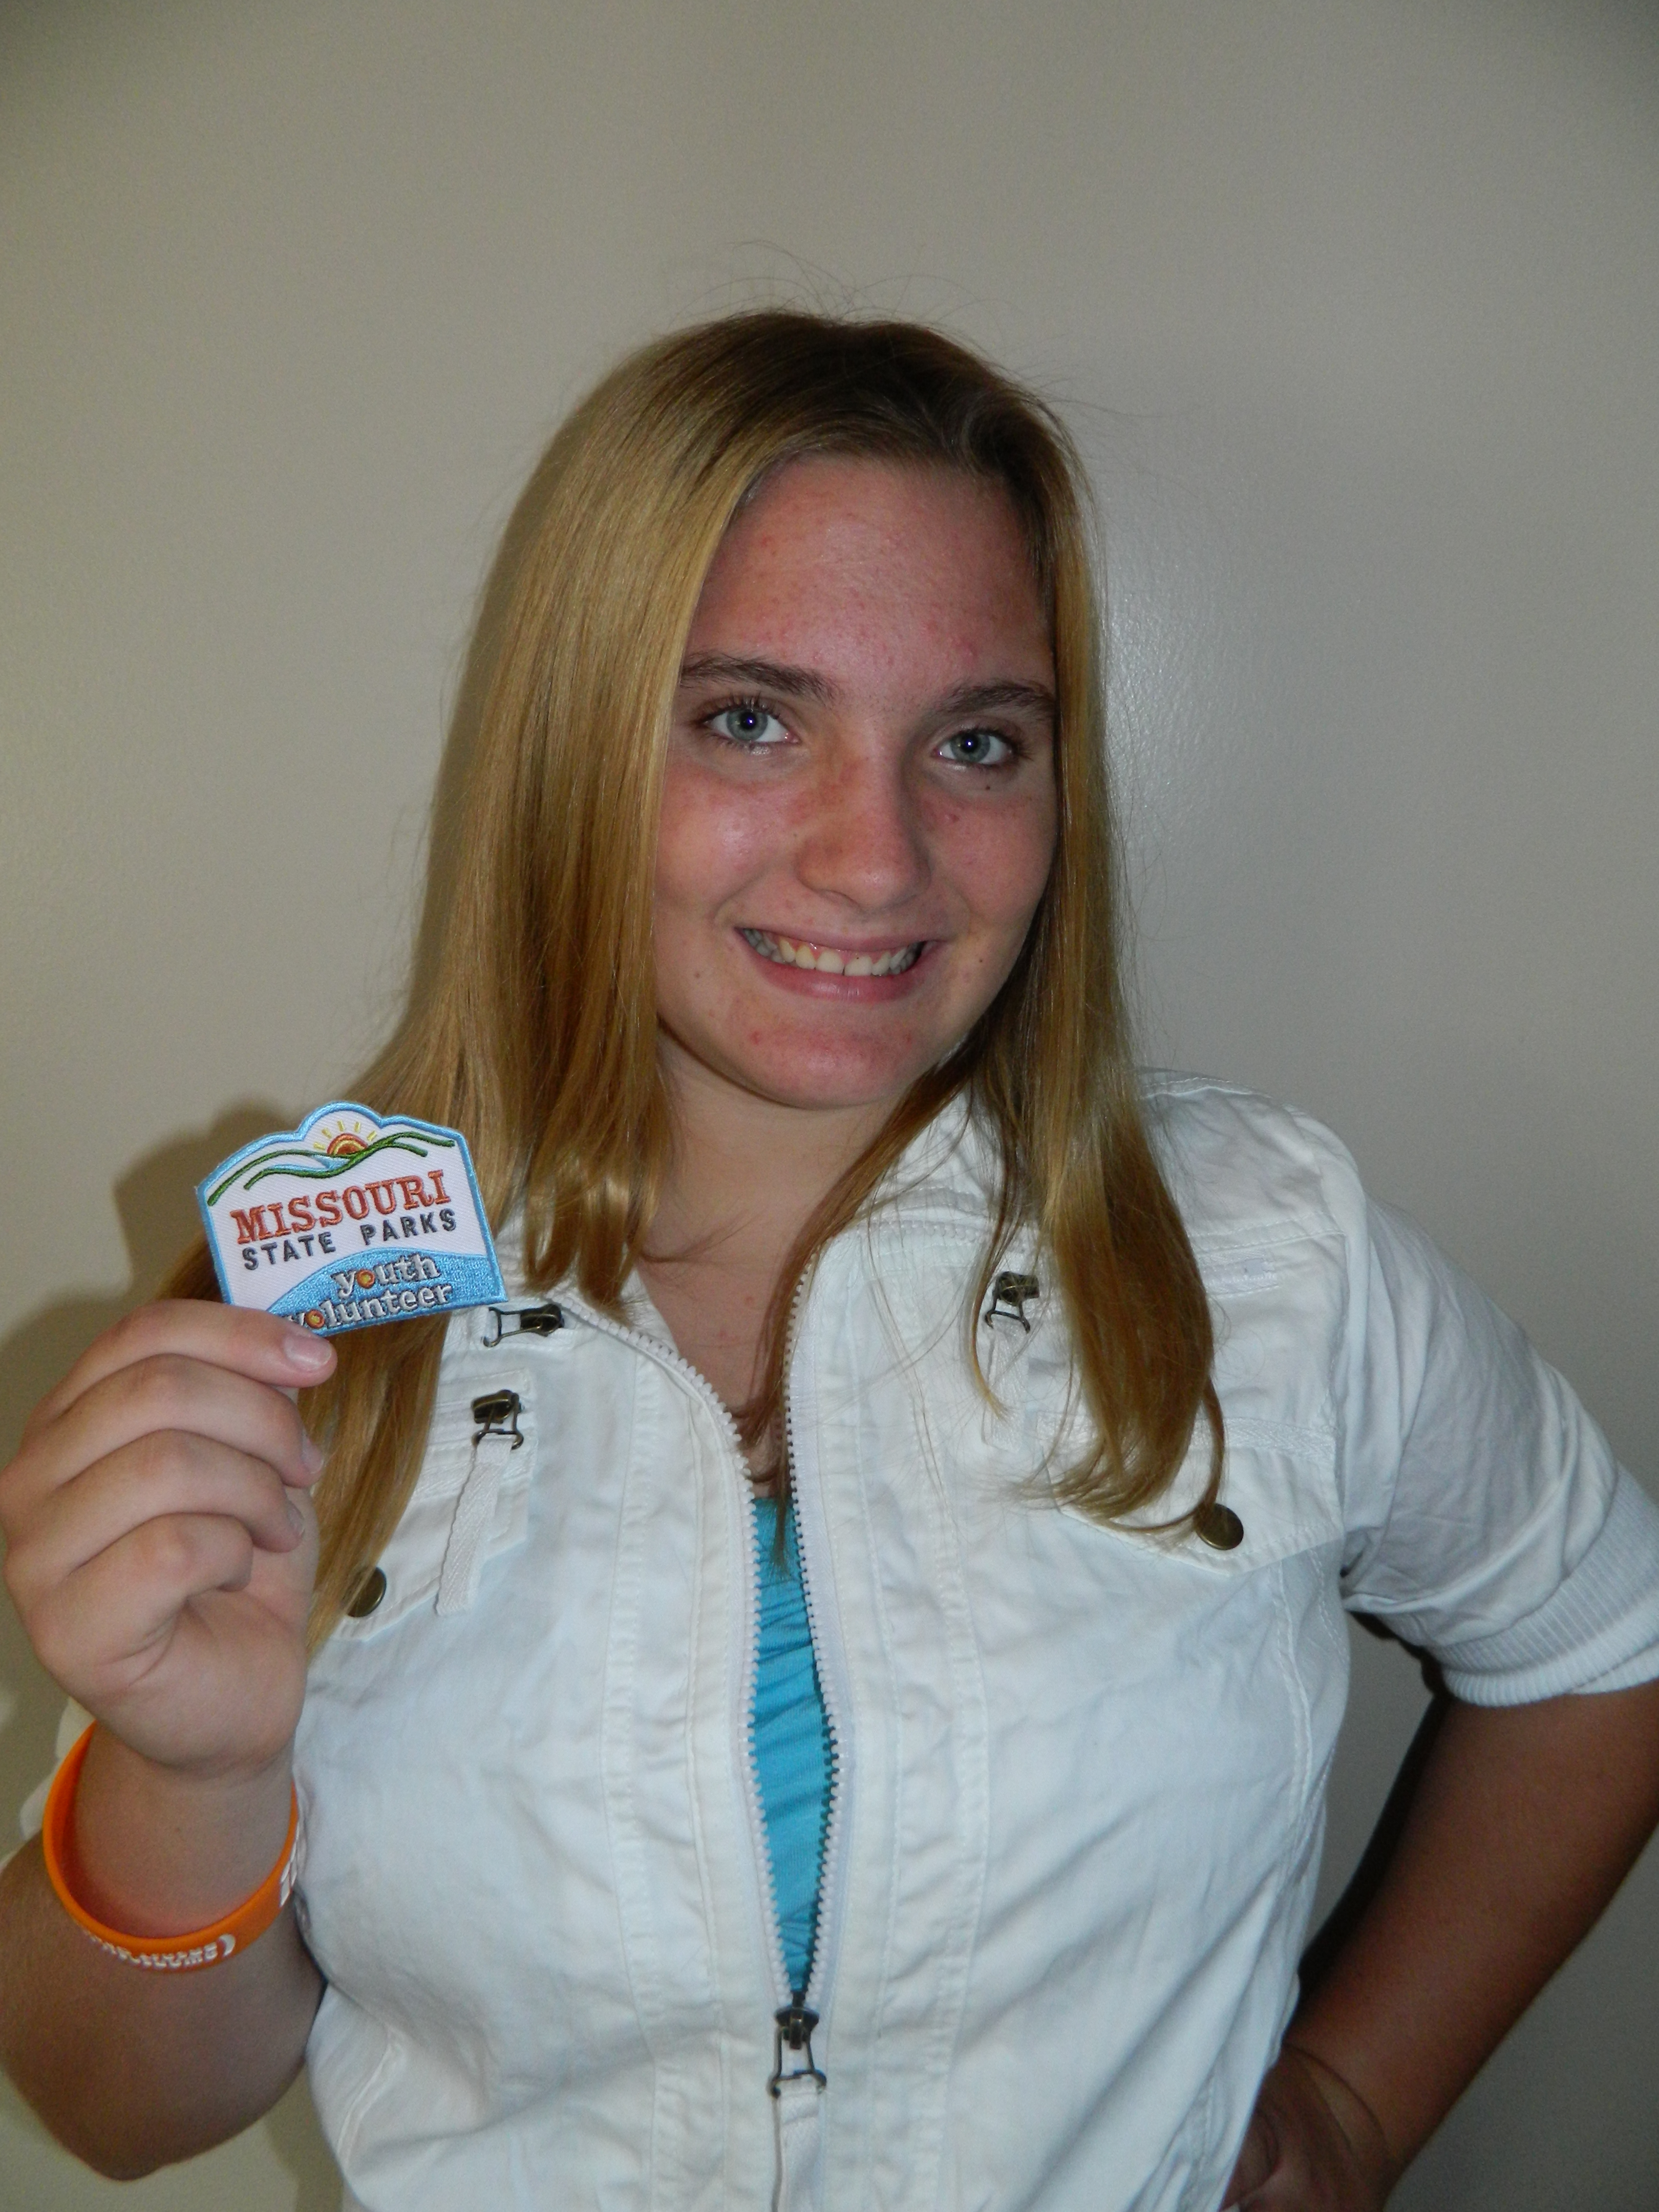 a young girl showing off the patch she earned